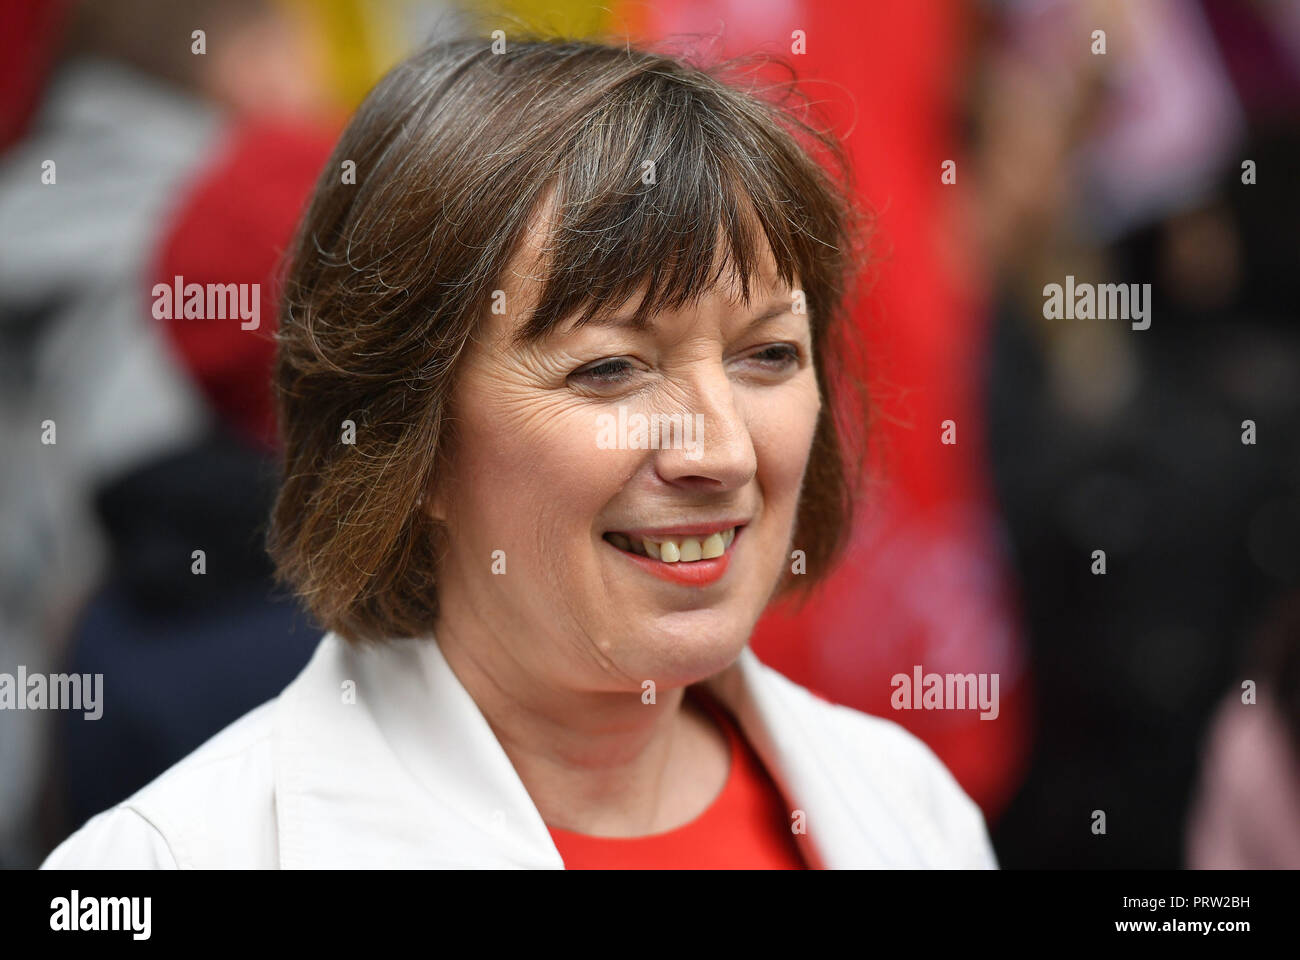 TUC General Secretary Frances O'Grady at a rally about disputes over pay and union recognition in Leicester Square, London. - Stock Image